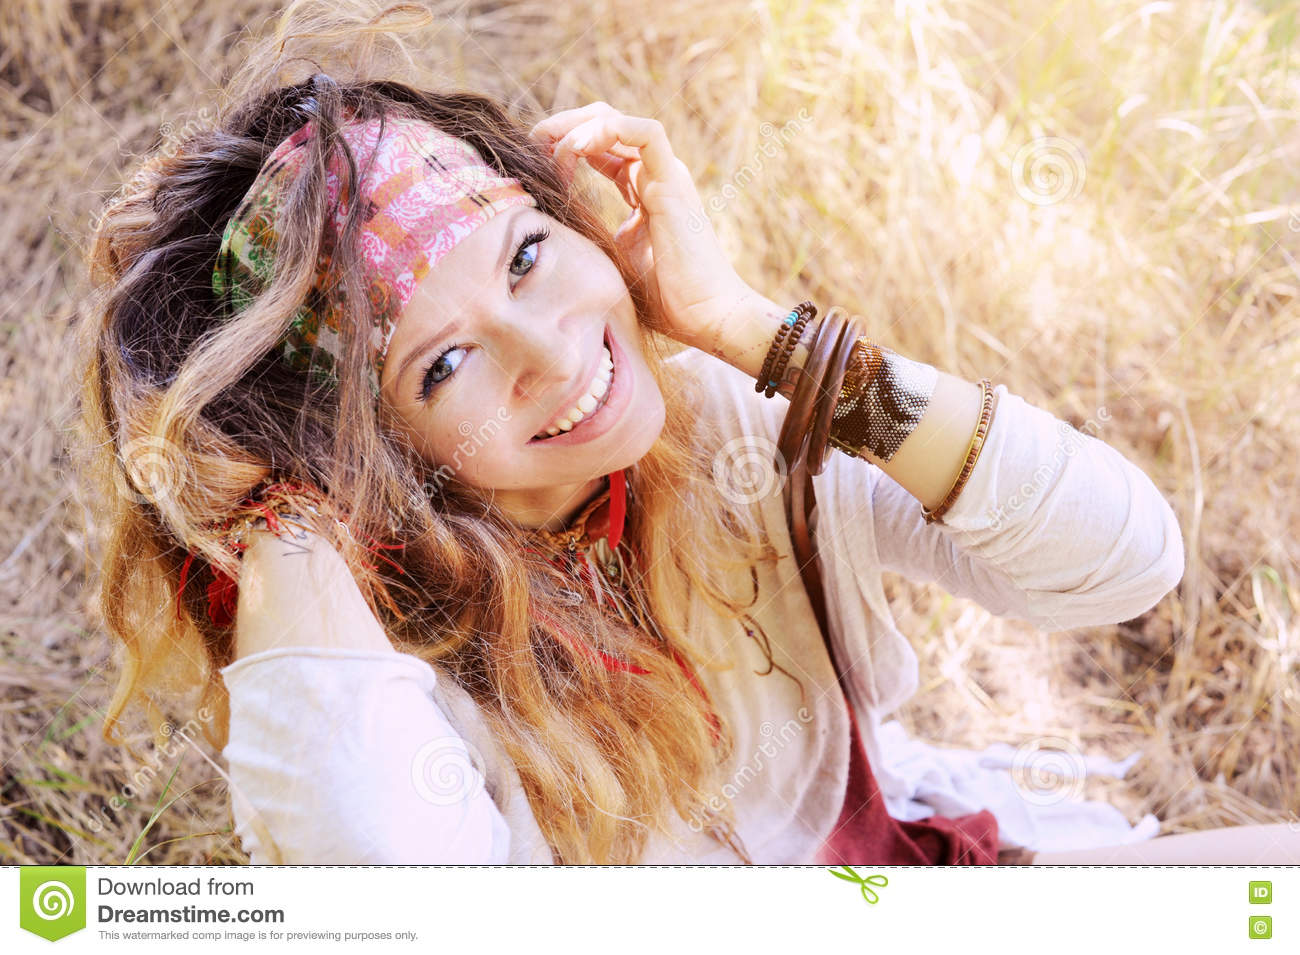 Smiling happy hippie woman outdoor portrait, looking at camera